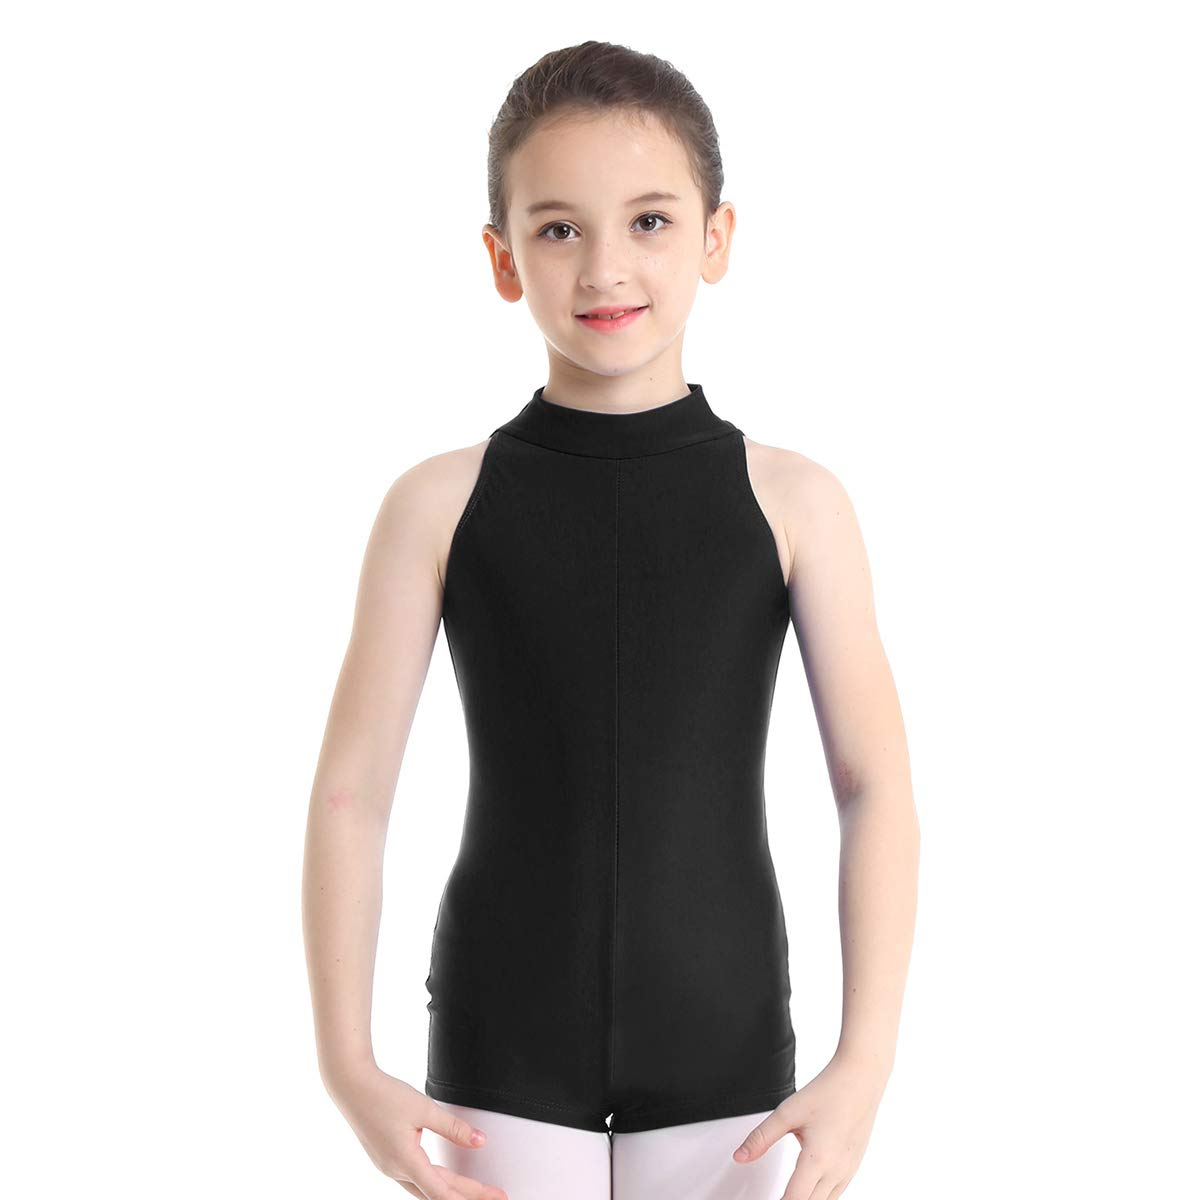 24c286d3e46 Amazon.com: iiniim Girls Mock Turtle-Neck Ballet Dance Leotard Unitard  Bodysuit Jumpsuit Gymnastics Dancewear: Clothing